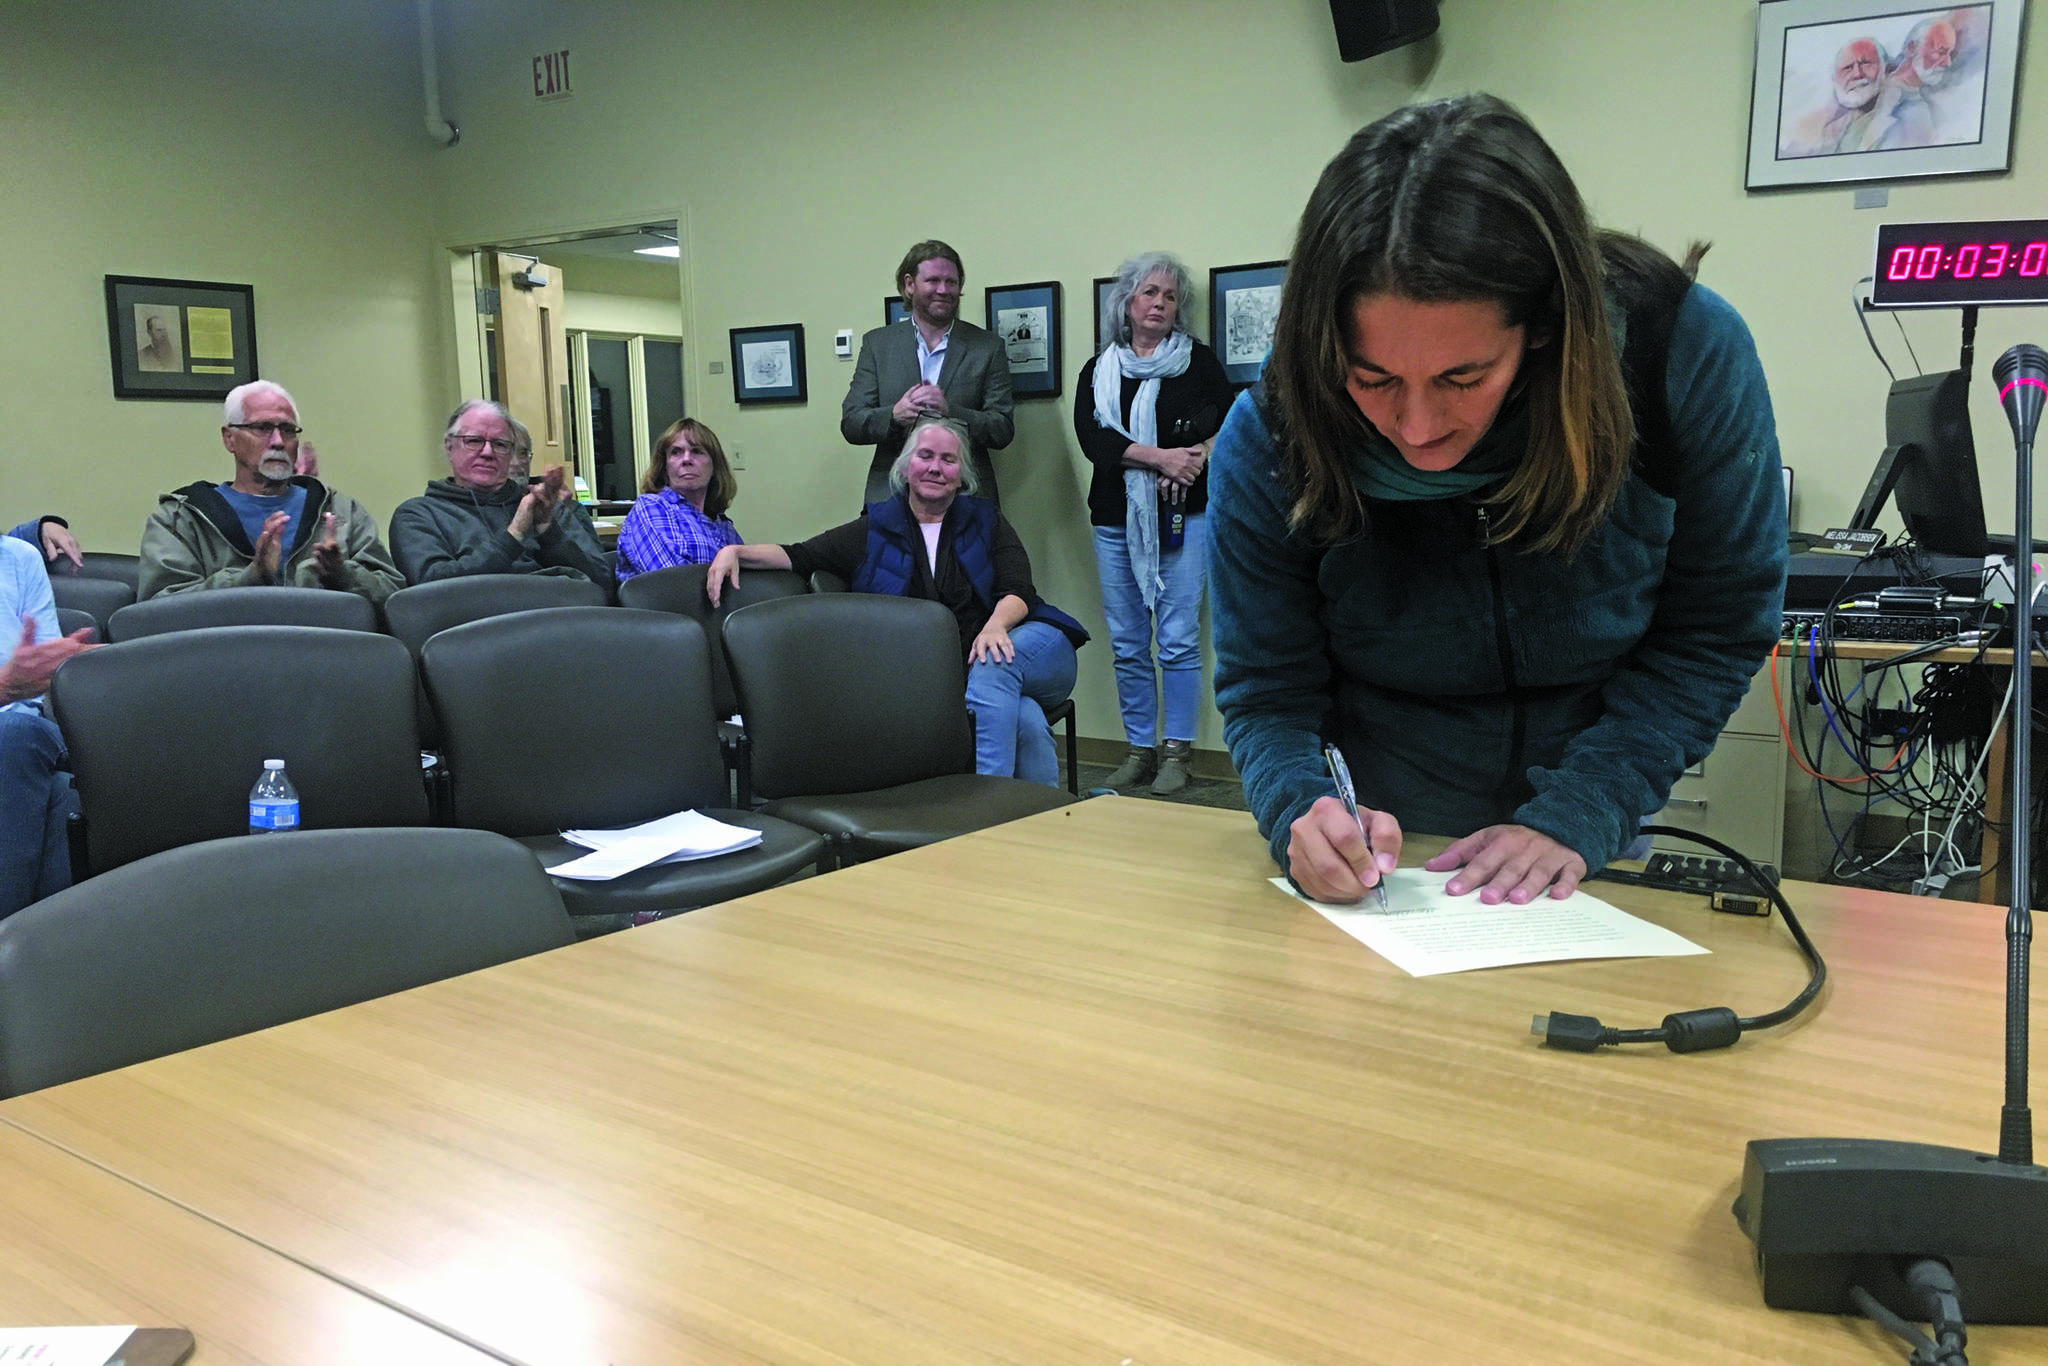 Former council member files election contest suit in superior court